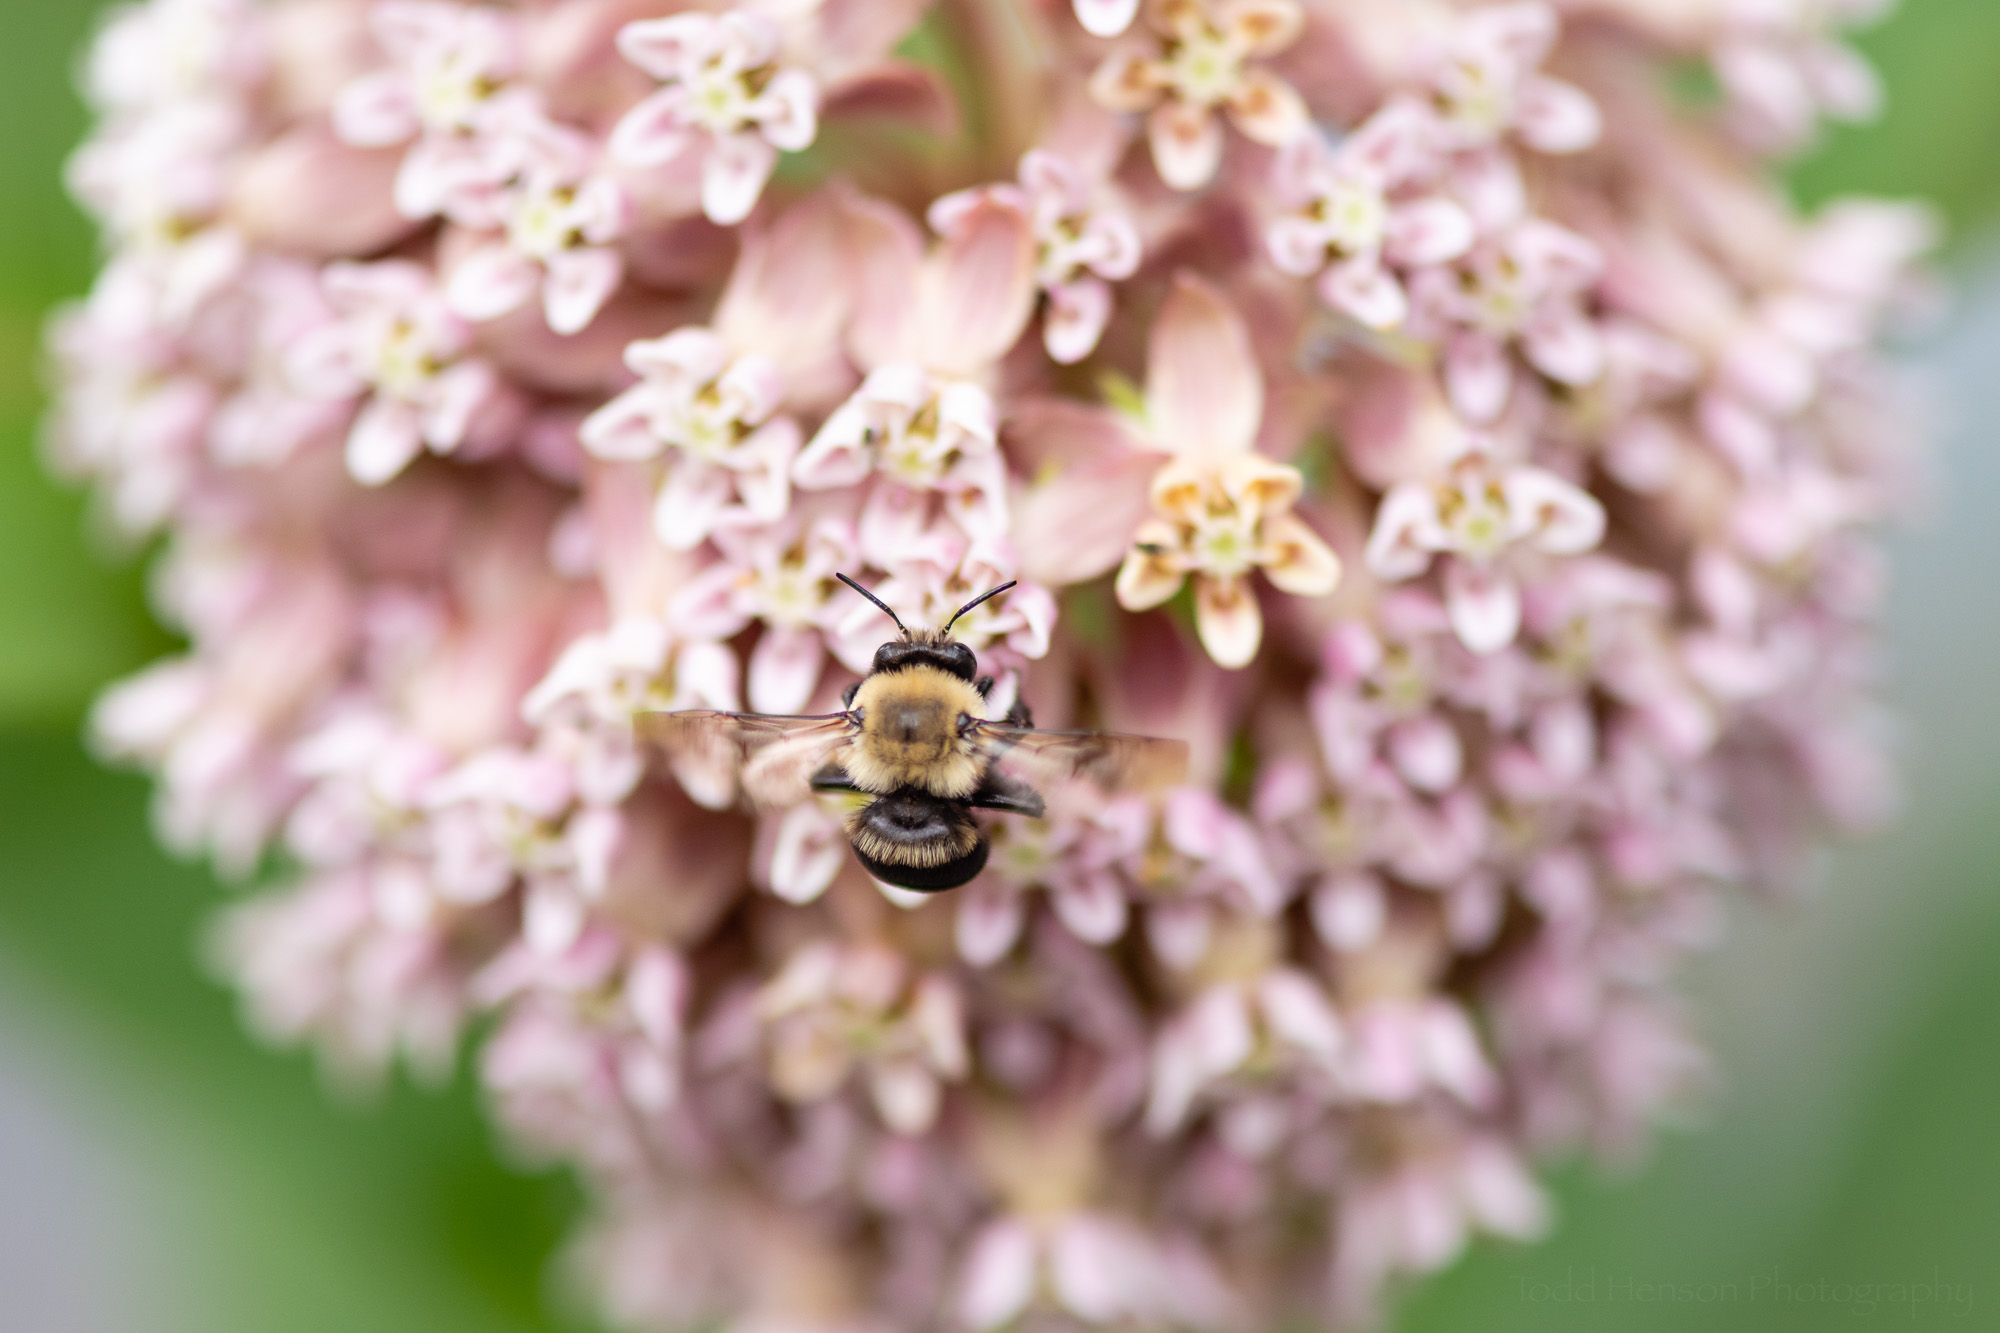 A Bumblebee on Common Milkweed, Occoquan Bay National Wildlife Refuge, Early June 2019